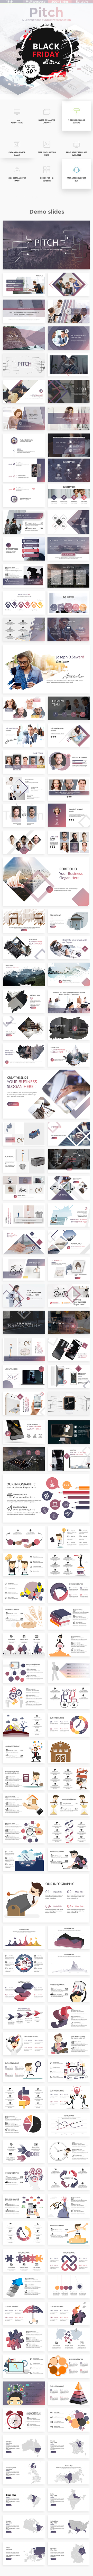 GraphicRiver Pitch Multipurpose Keynote Template 20992159